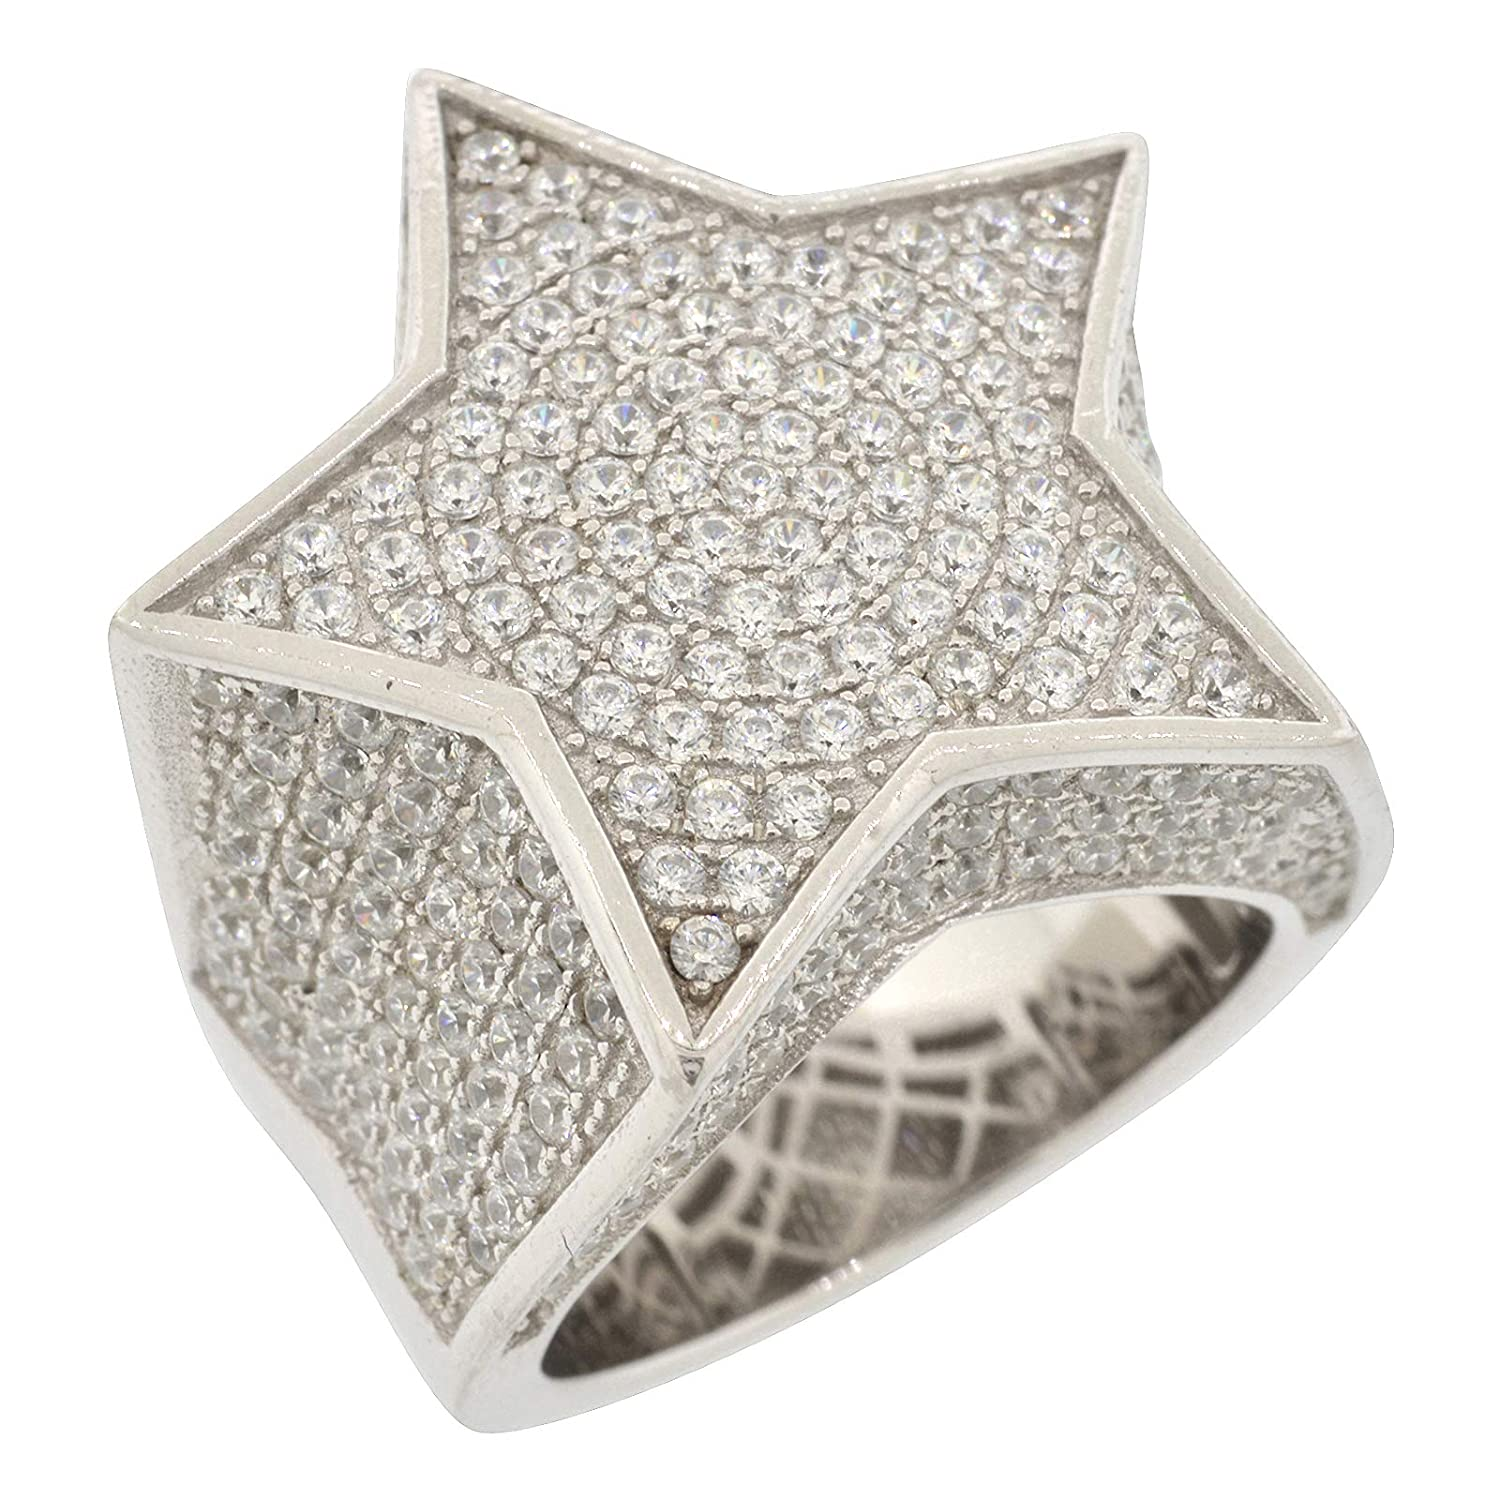 Size 10 Mens Rhodium-Plated Sterling Silver Round Cut Cubic Zirconia Iced Out Star Shaped Ring